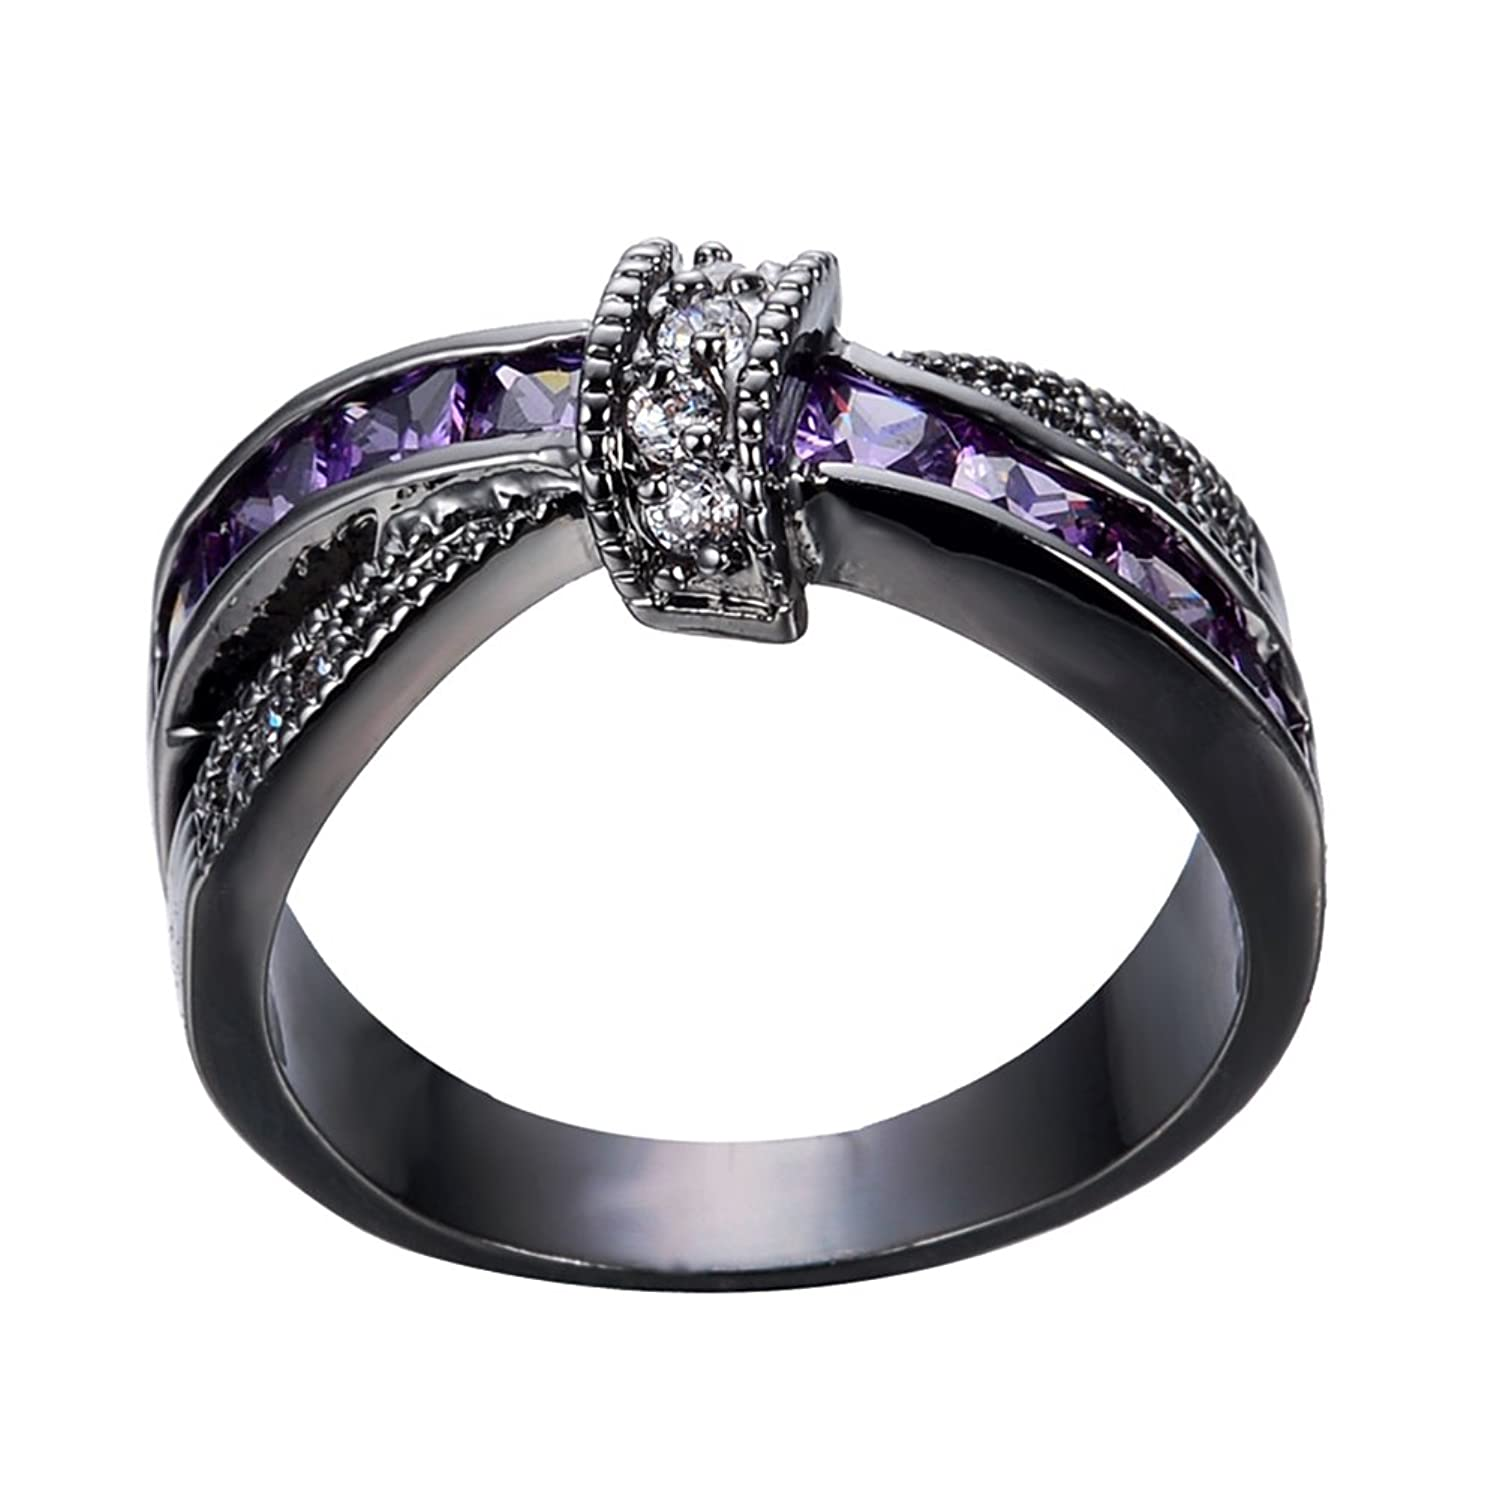 Amazon: Bamos Jewelry Womens Purple Zc Stone Promise Gift Rings Lab For  Engagement Wedding Criss Cross Black Gold Plated Ring For Her Size 510:  Jewelry